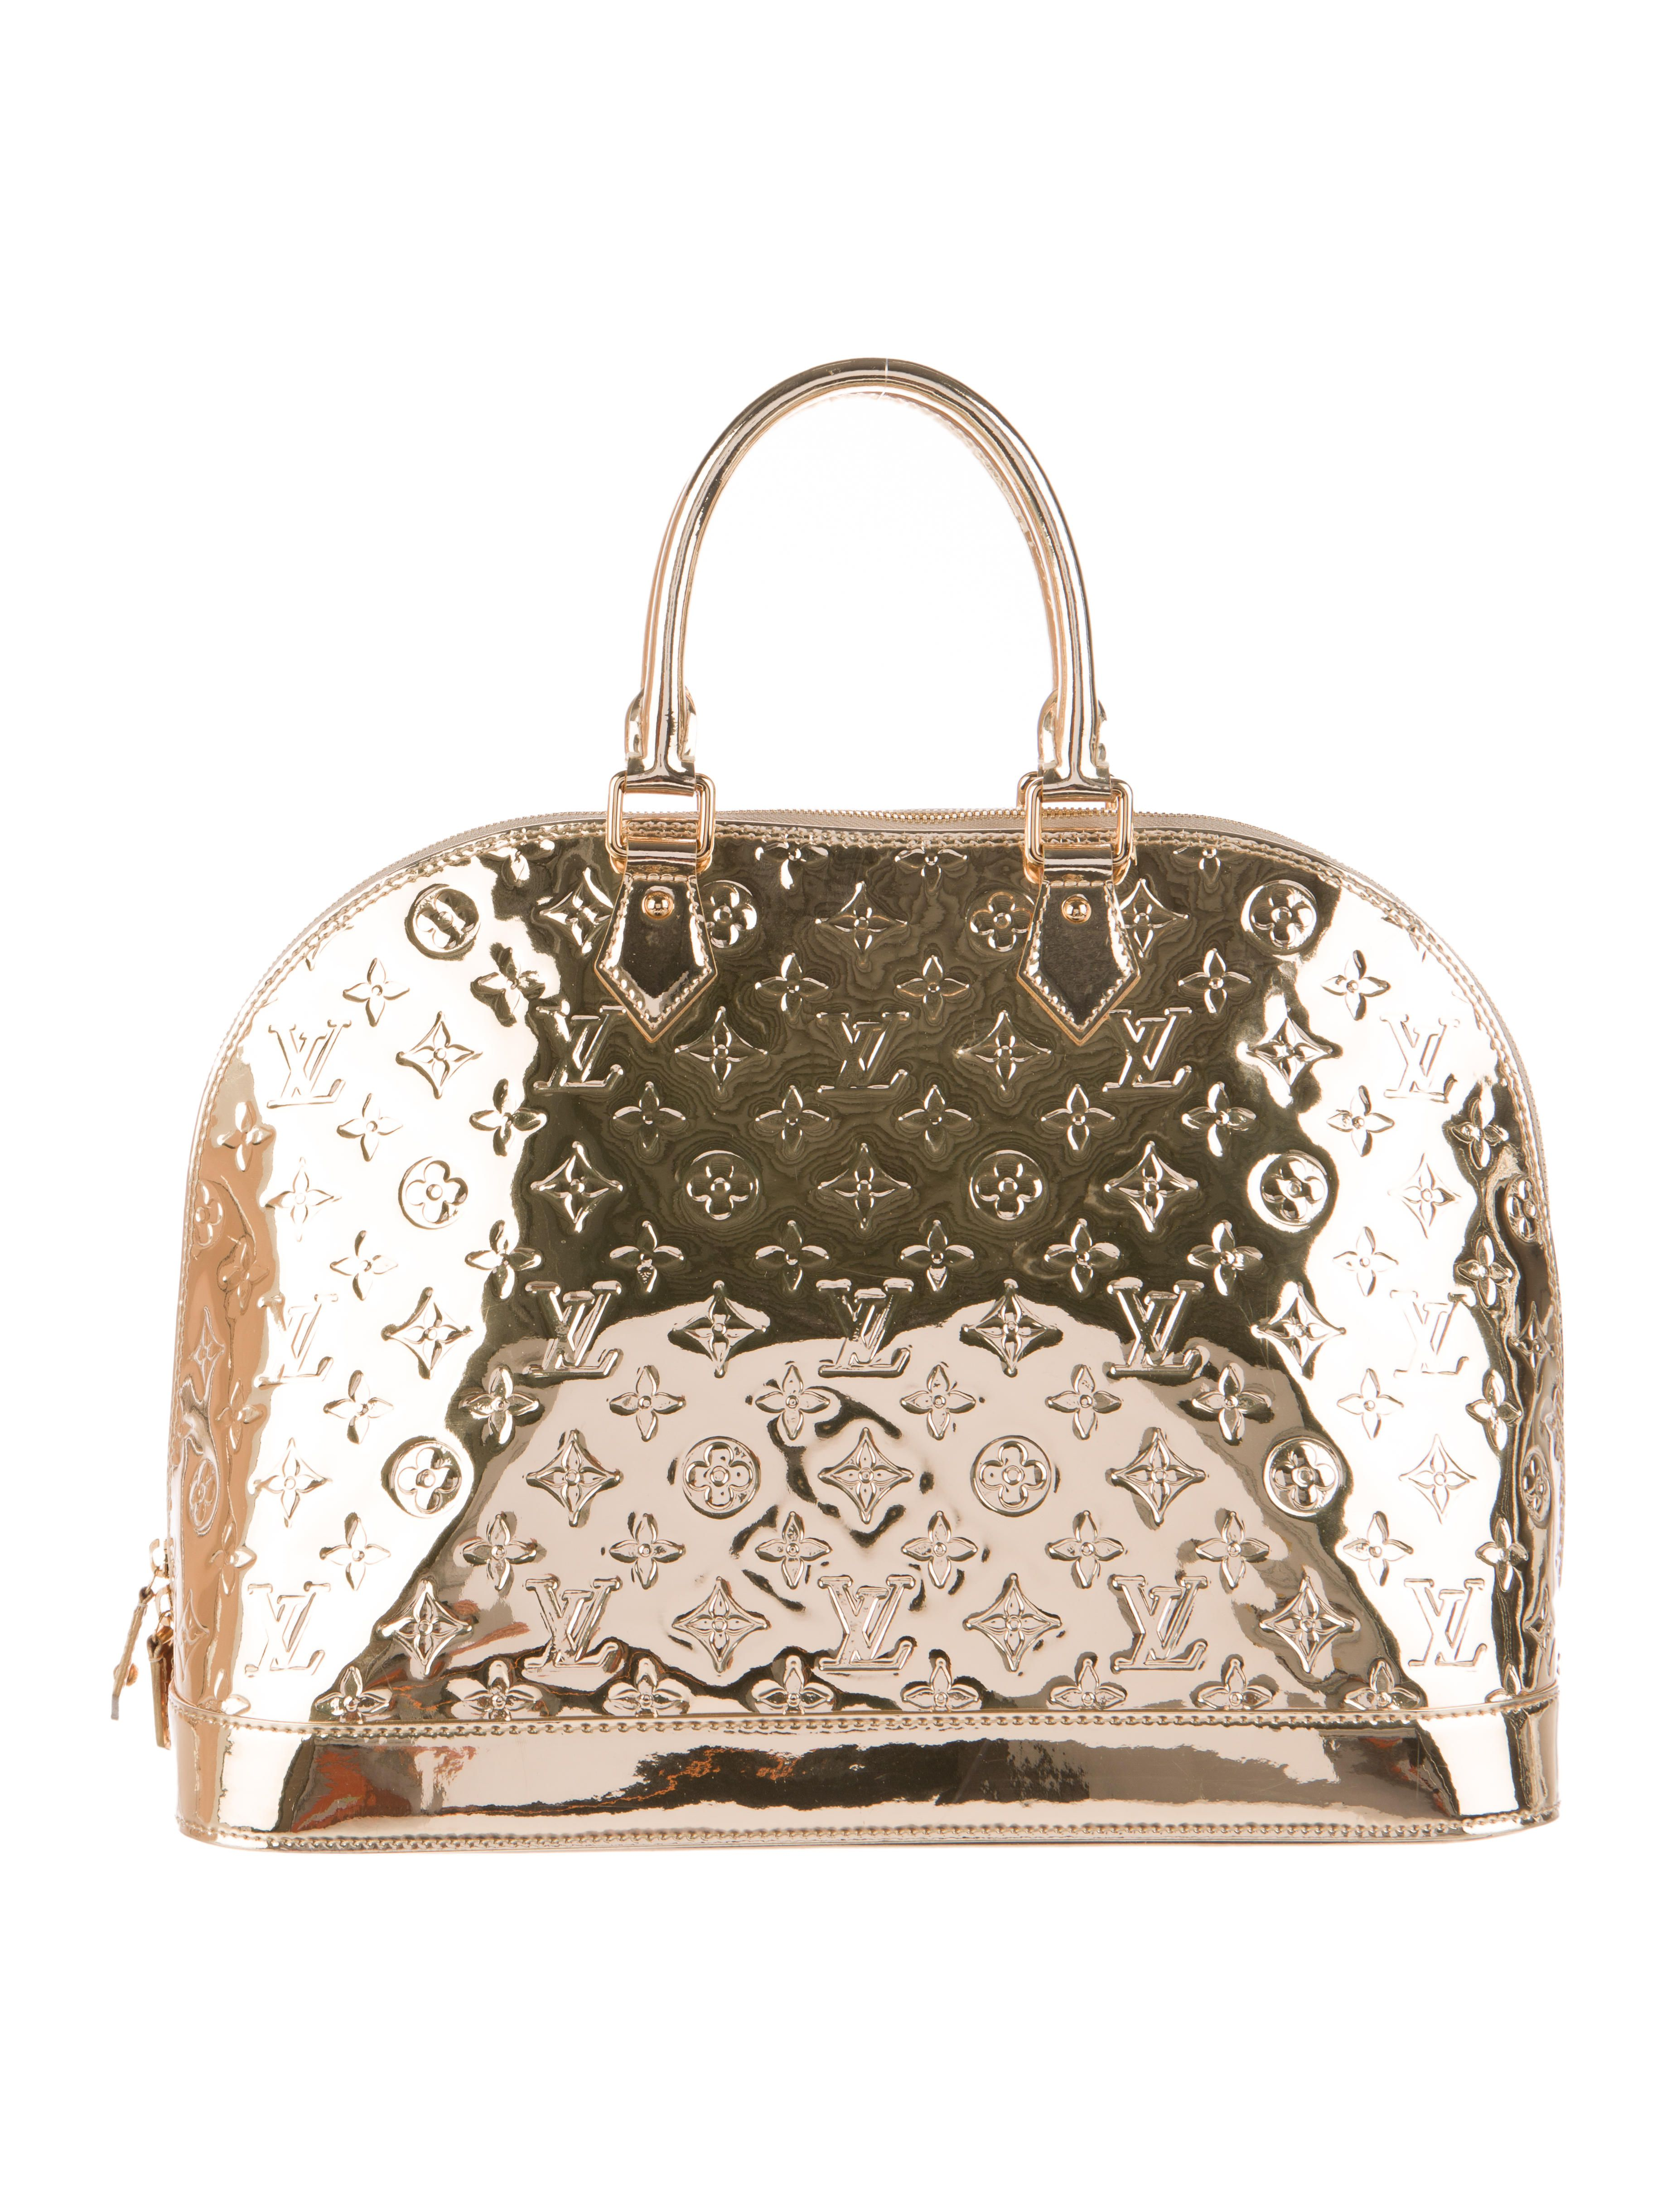 Gold Miroire leather Louis Vuitton Alma MM with gold-tone hardware, two rolled handles, beige canvas lining, two wall pockets and top two-way zip closure. Date code reads MI4048. Shop authentic designer handbags by Louis Vuitton at The RealReal.